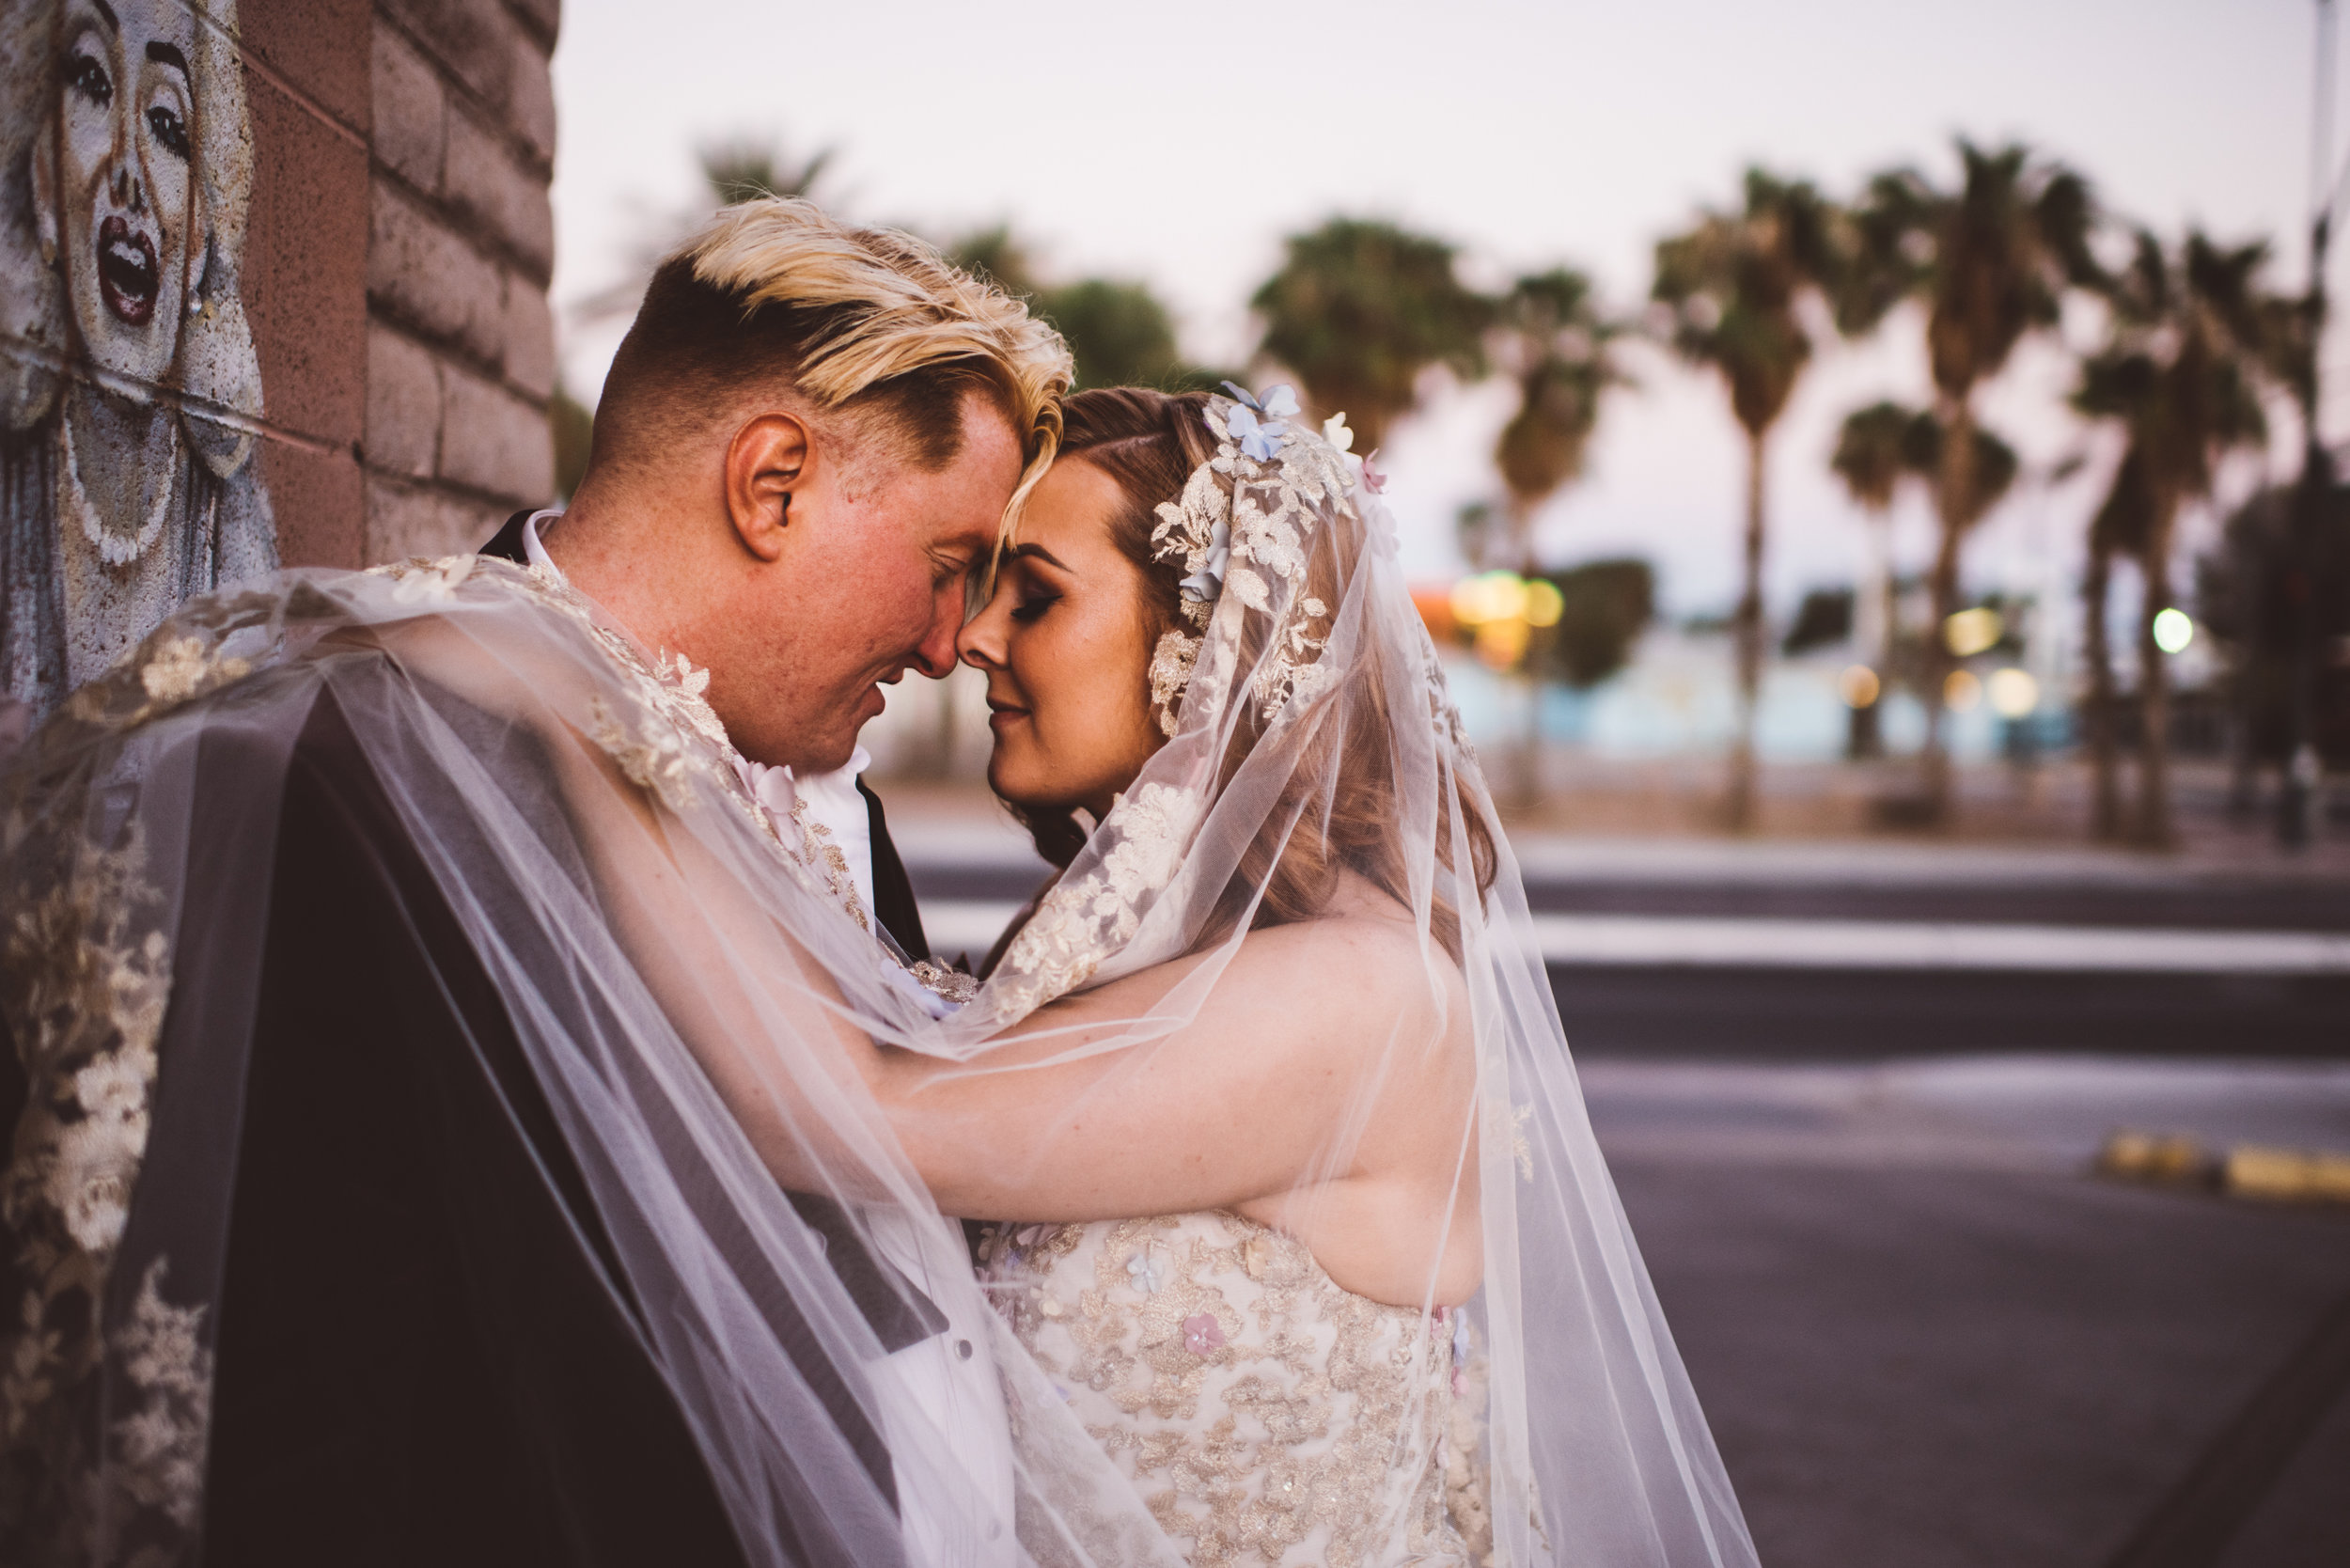 Neon Museum Elopement Elvis Elopement Las Vegas Photography by Ashley Marie-336.jpg